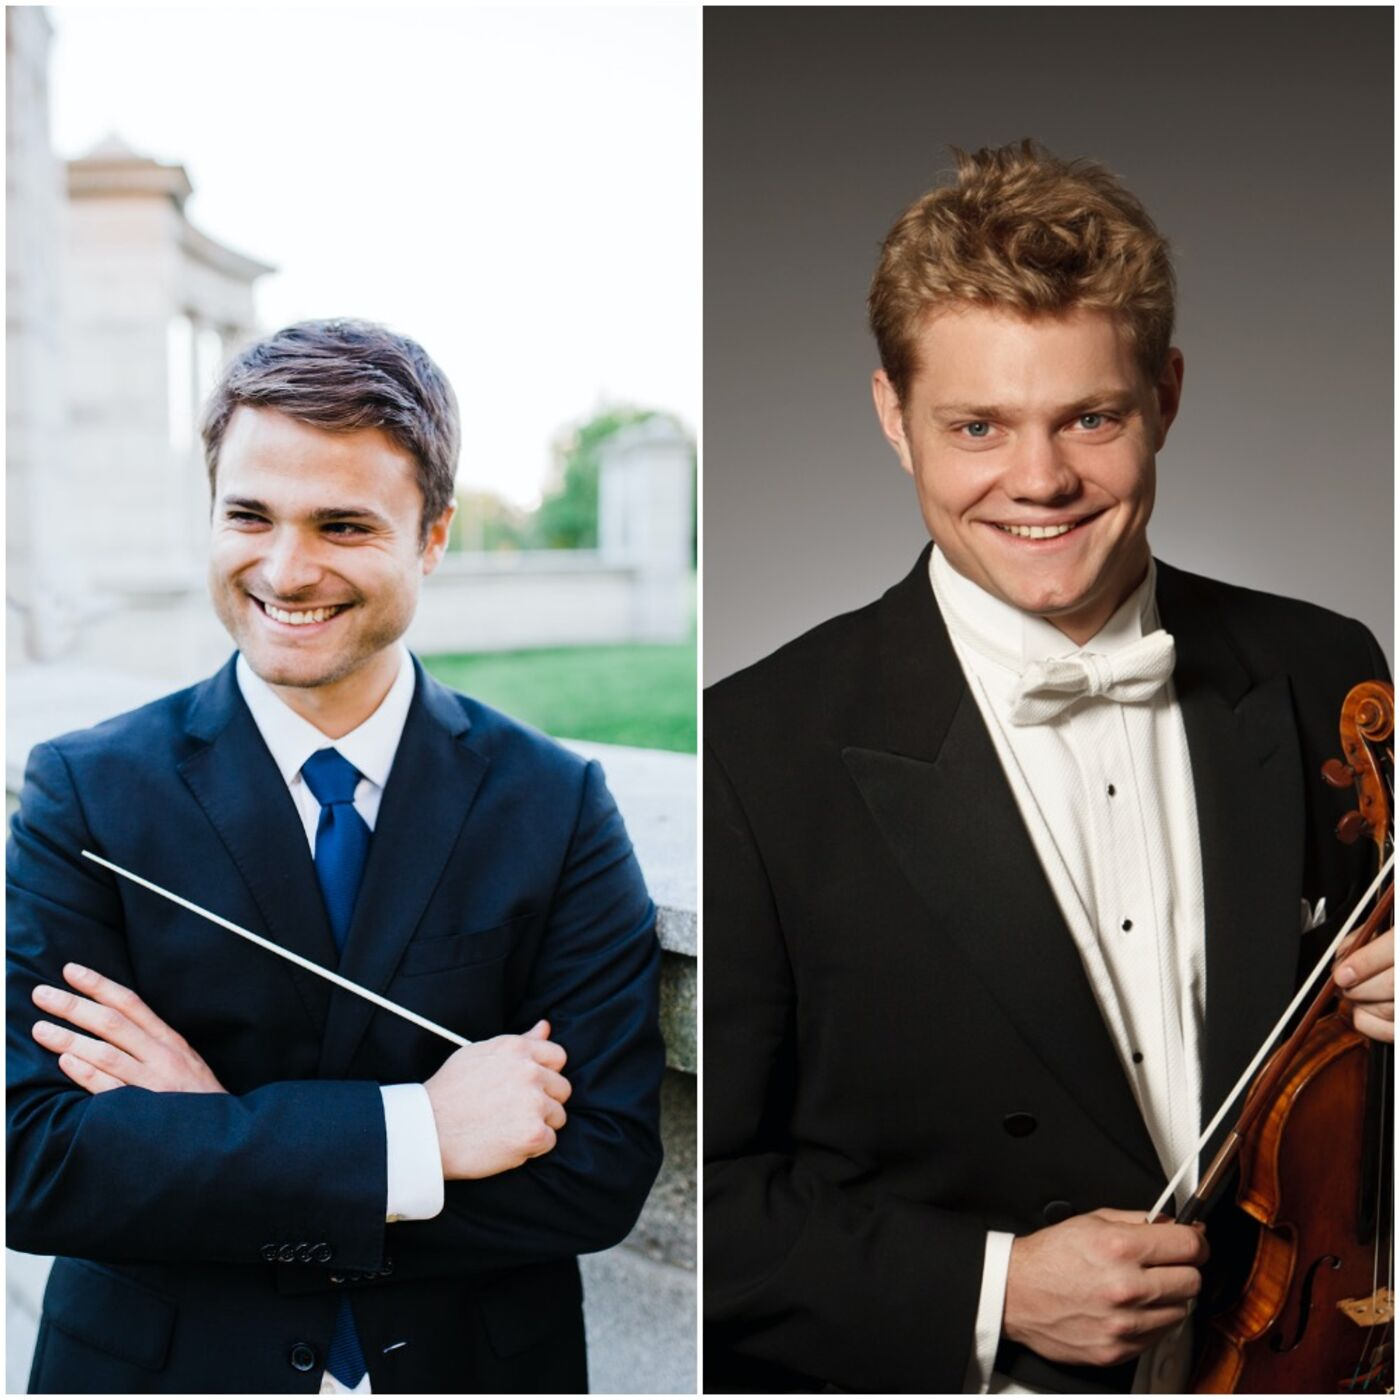 Sarasota Orchestra's Guest Conductor and Soloist, Stephen Mulligan and David Coucheron, Join the Club